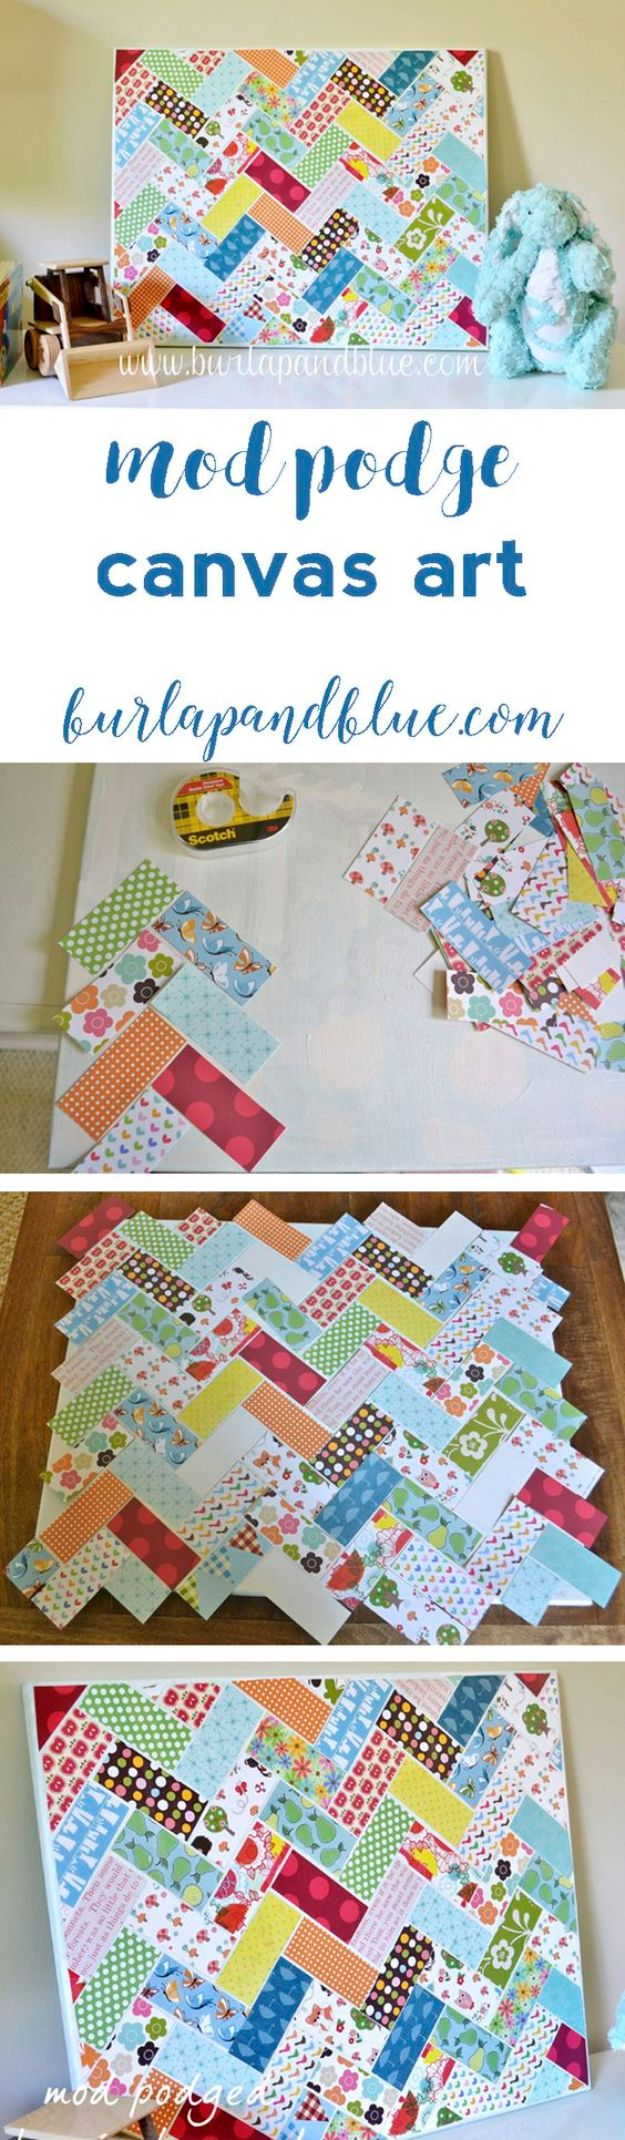 Best Quilting and Fabric Scraps Projects - Herringbone Wall Art - Easy Ideas for Making DIY Home Decor, Homemade Gifts, Wall Art , Kitchen Accessories, Clothes and Fashion from Leftover Fabric Scrap and Quilt Pieces - Cute Do It Yourself Ideas for Birthday, Christmas, Baby and Friends http://diyjoy.com/quilting-scraps-projects